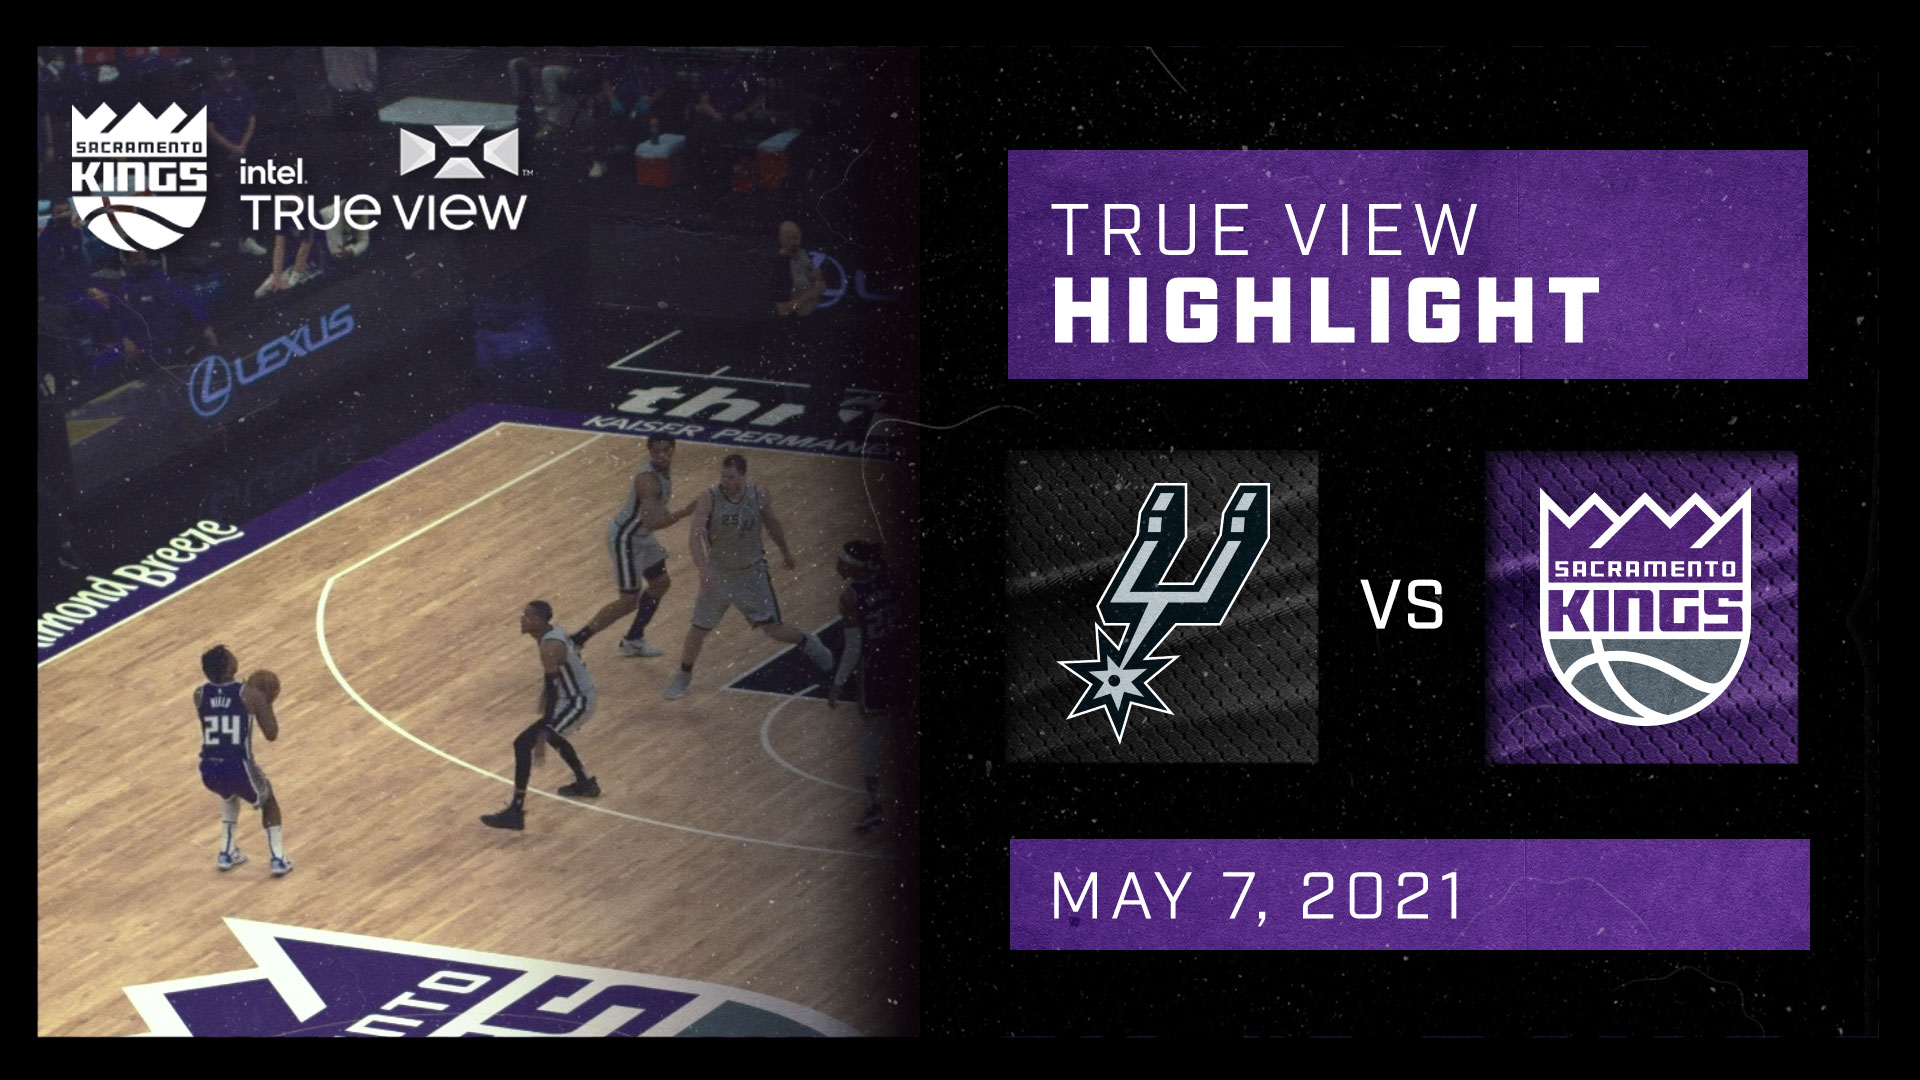 Intel True View Highlight - Hield Deep 3-Pointer vs Spurs 5.7.21